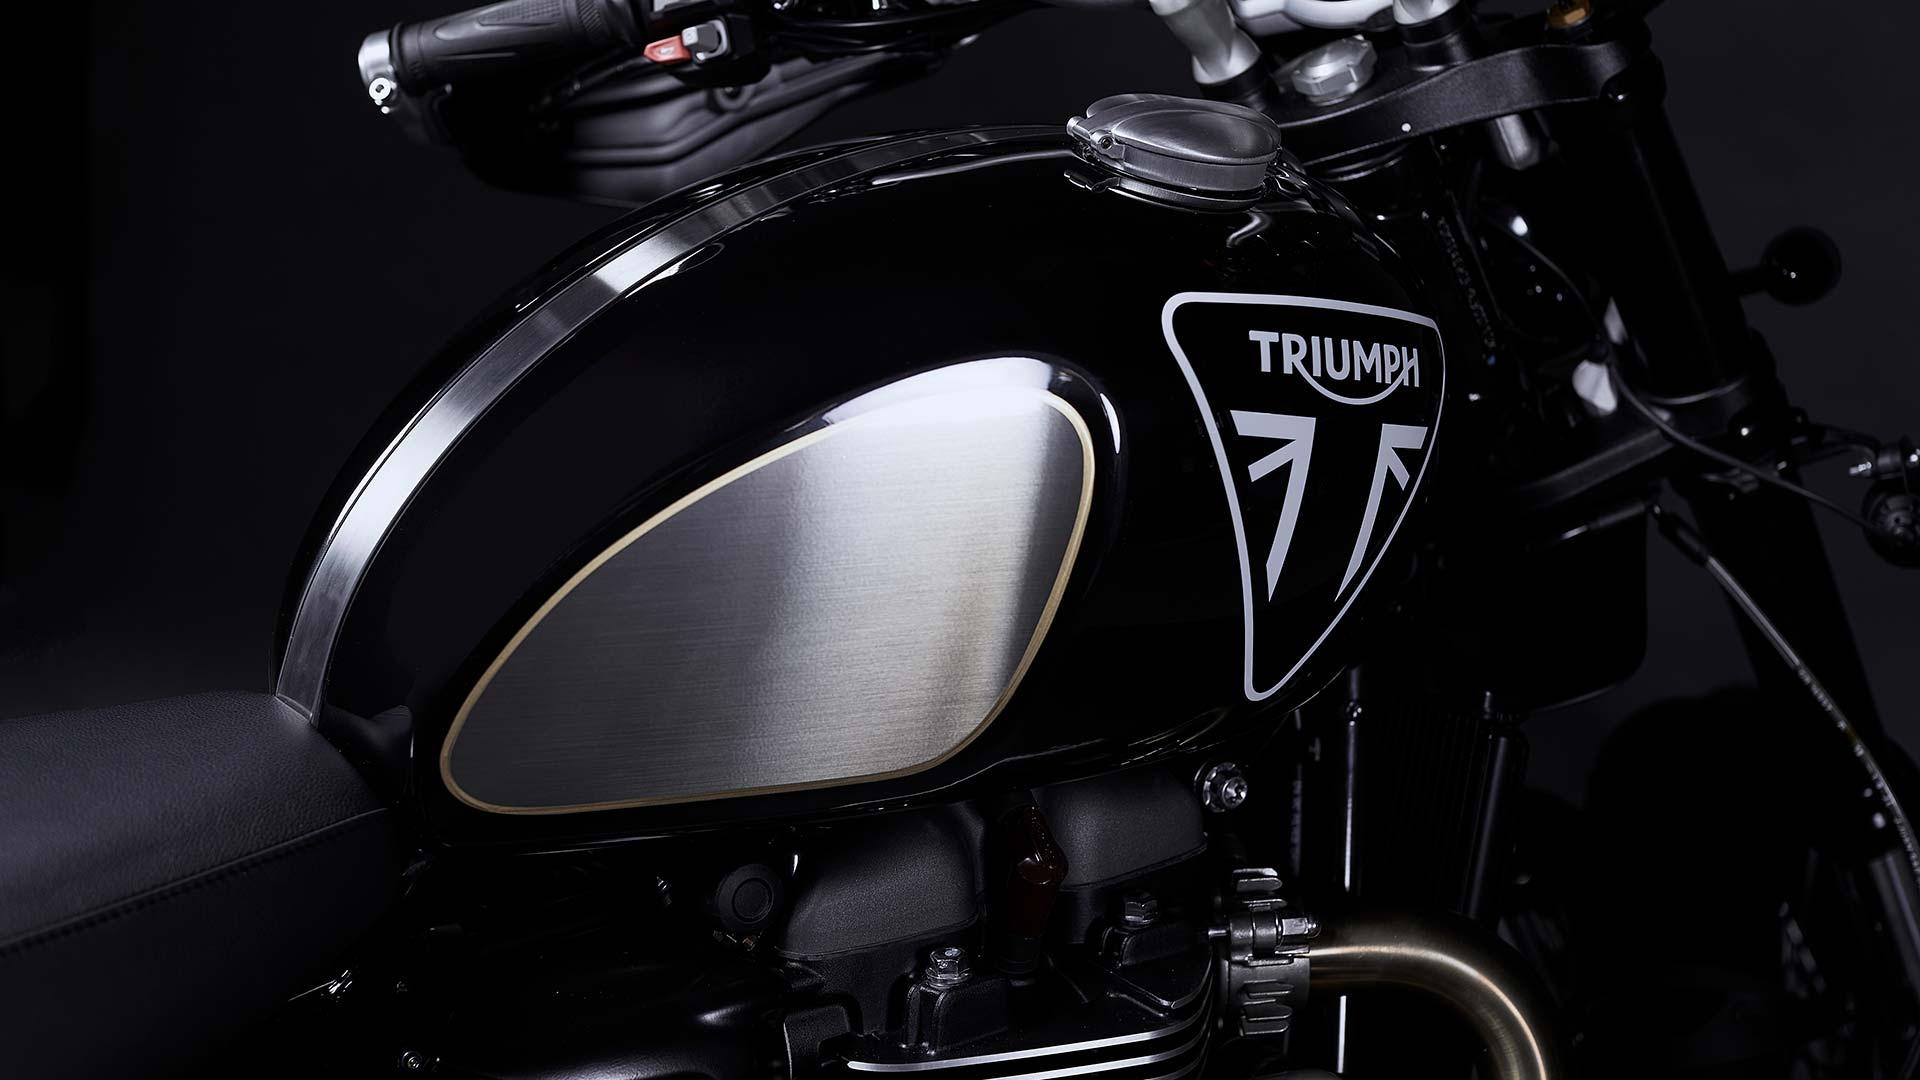 Scrambler 1200 Bond Edition's premium Sapphire Black tank with iconic oversized Triumph badge